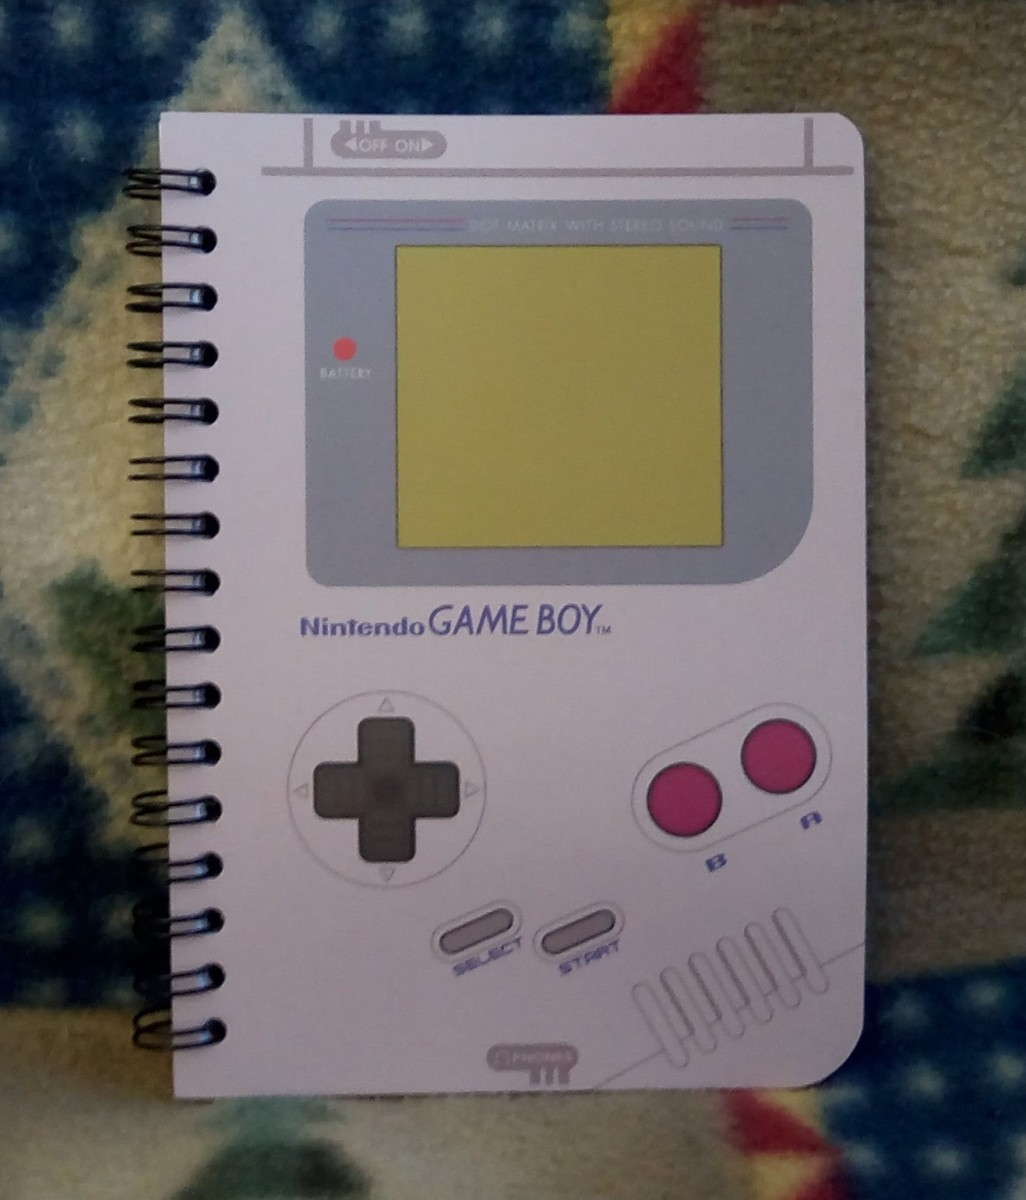 Mini Game Boy Notepad - Nintendo CultureFly Collector Box